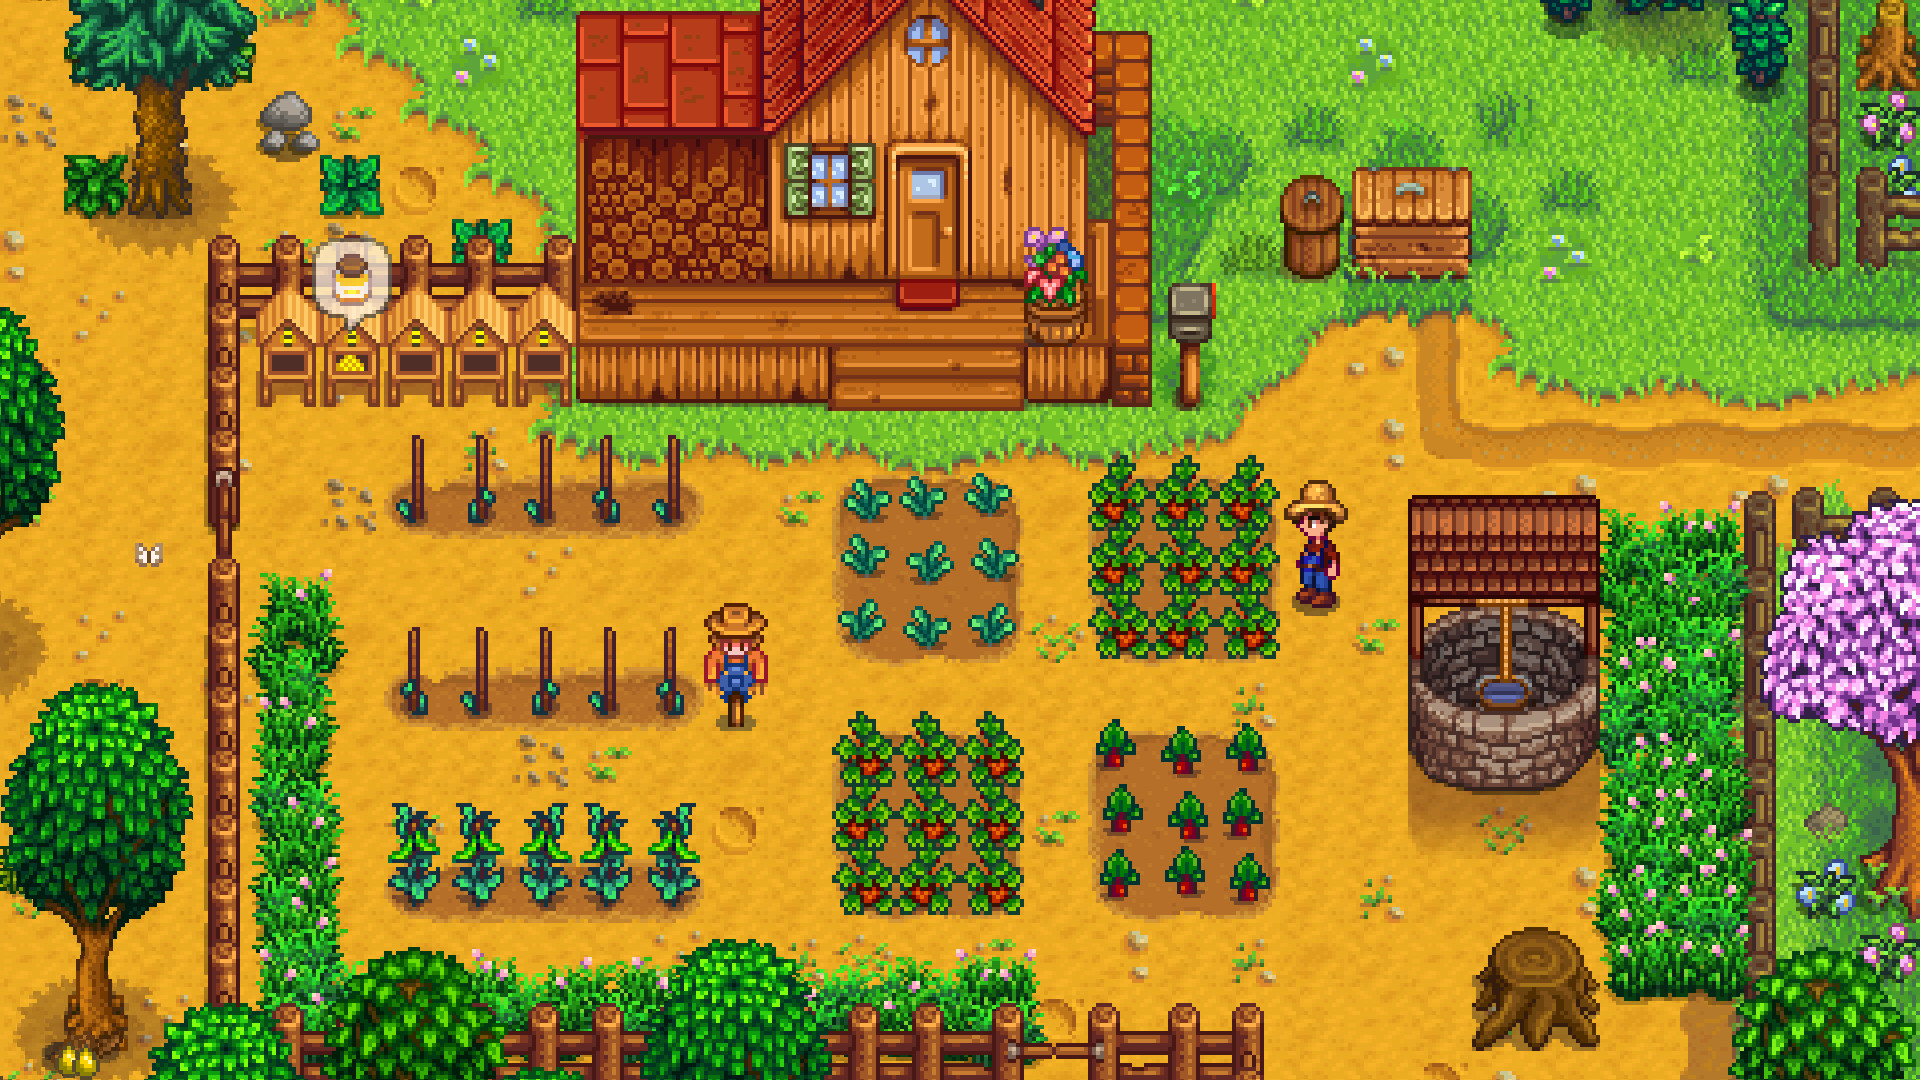 Stardew Valley is coming to Game Pass